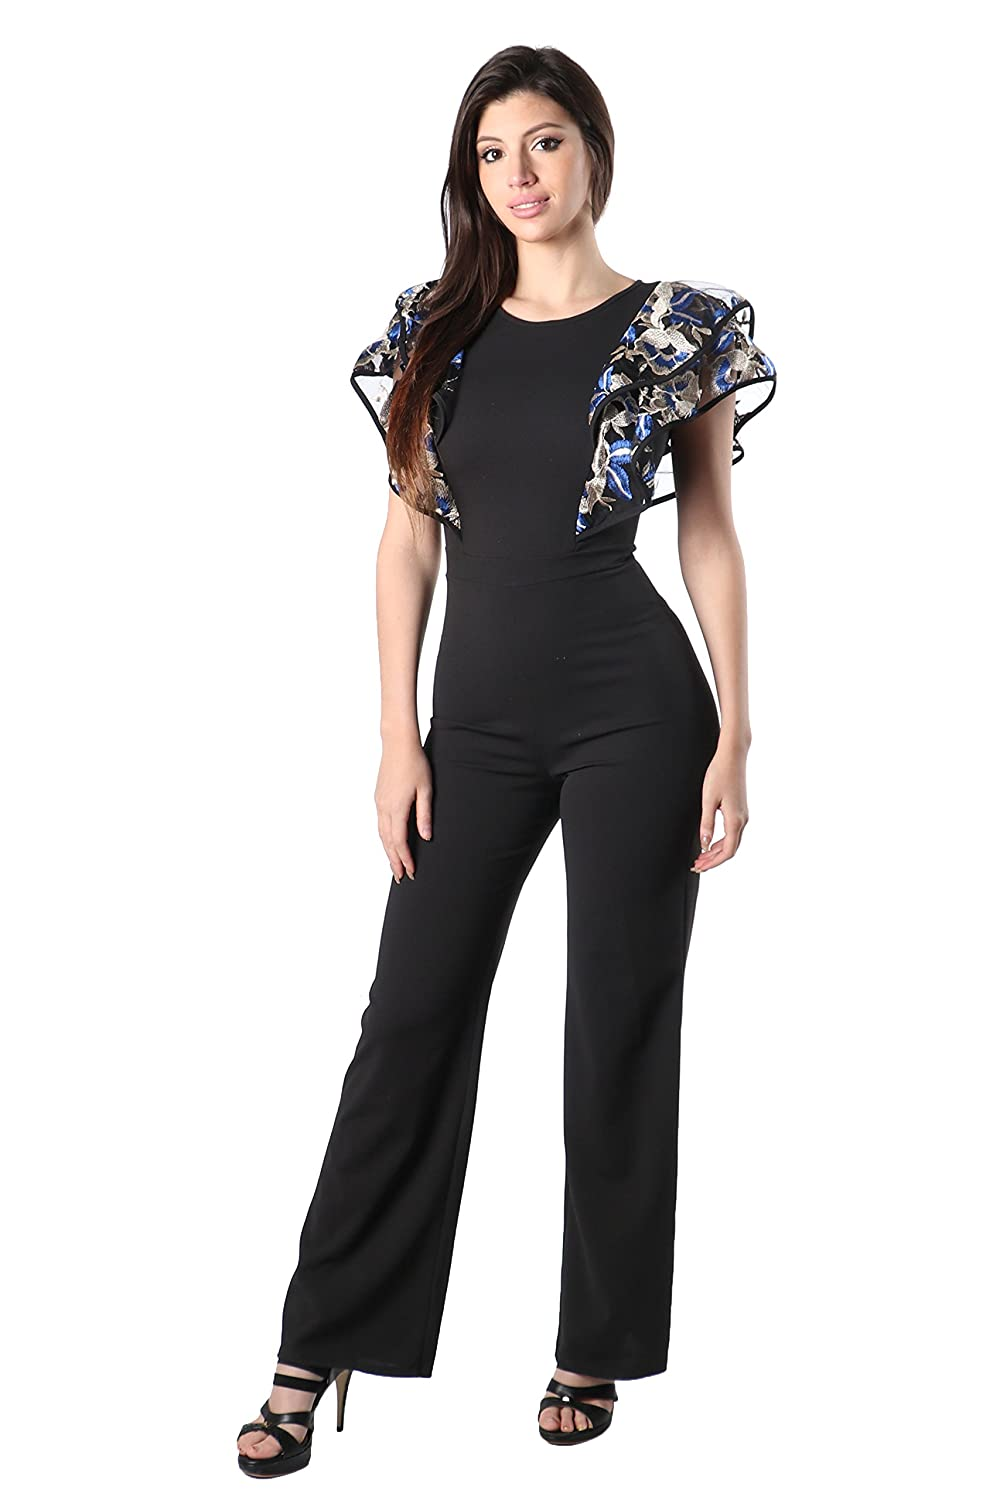 bluee_mj80650 ShopWTD Womens Floral Embroidered Ruffle Layered Sleeves Solid Bodycon Fitted Jumpsuit